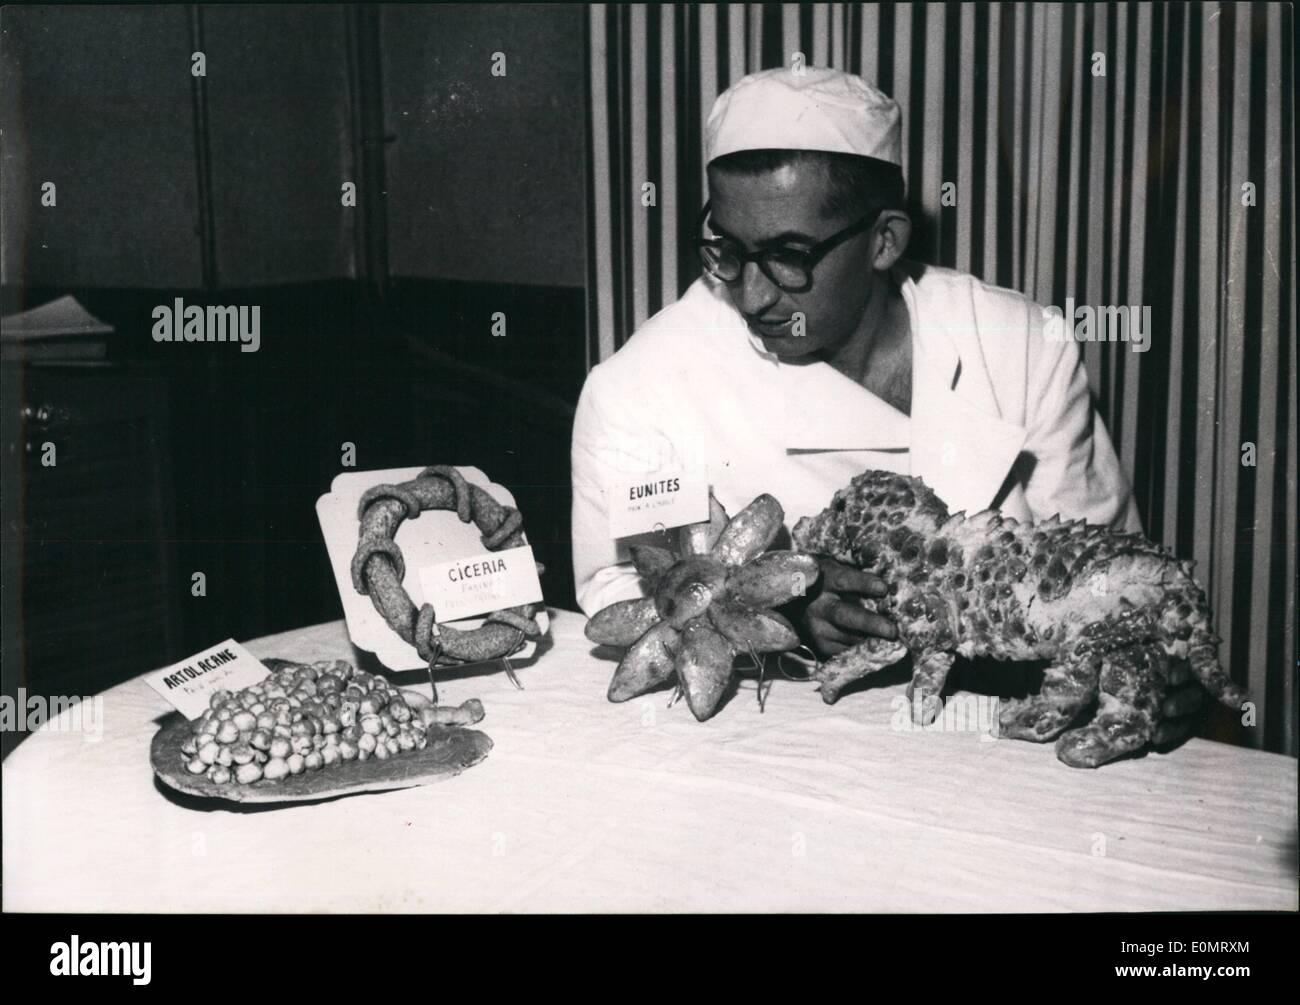 Jun. 06, 1956 - Paris Baker Exhibits Ancient Greek and Egyptian Bread: M. Sarrau, a Pris Baker, is a reat scholat at the same Time. after much research work and stuies he has succeeded in fingding the recipe for producing Acien Greek and Egyptain Bread which he is now showing in his bakery. ''None of my customers, said the Erudite Baker,'' would ever like to have this Bread for his meals. but it is quite intersting.'' Picture Shows;' M. Sarrau with some of his 'Historical' Loaves. - Stock Image